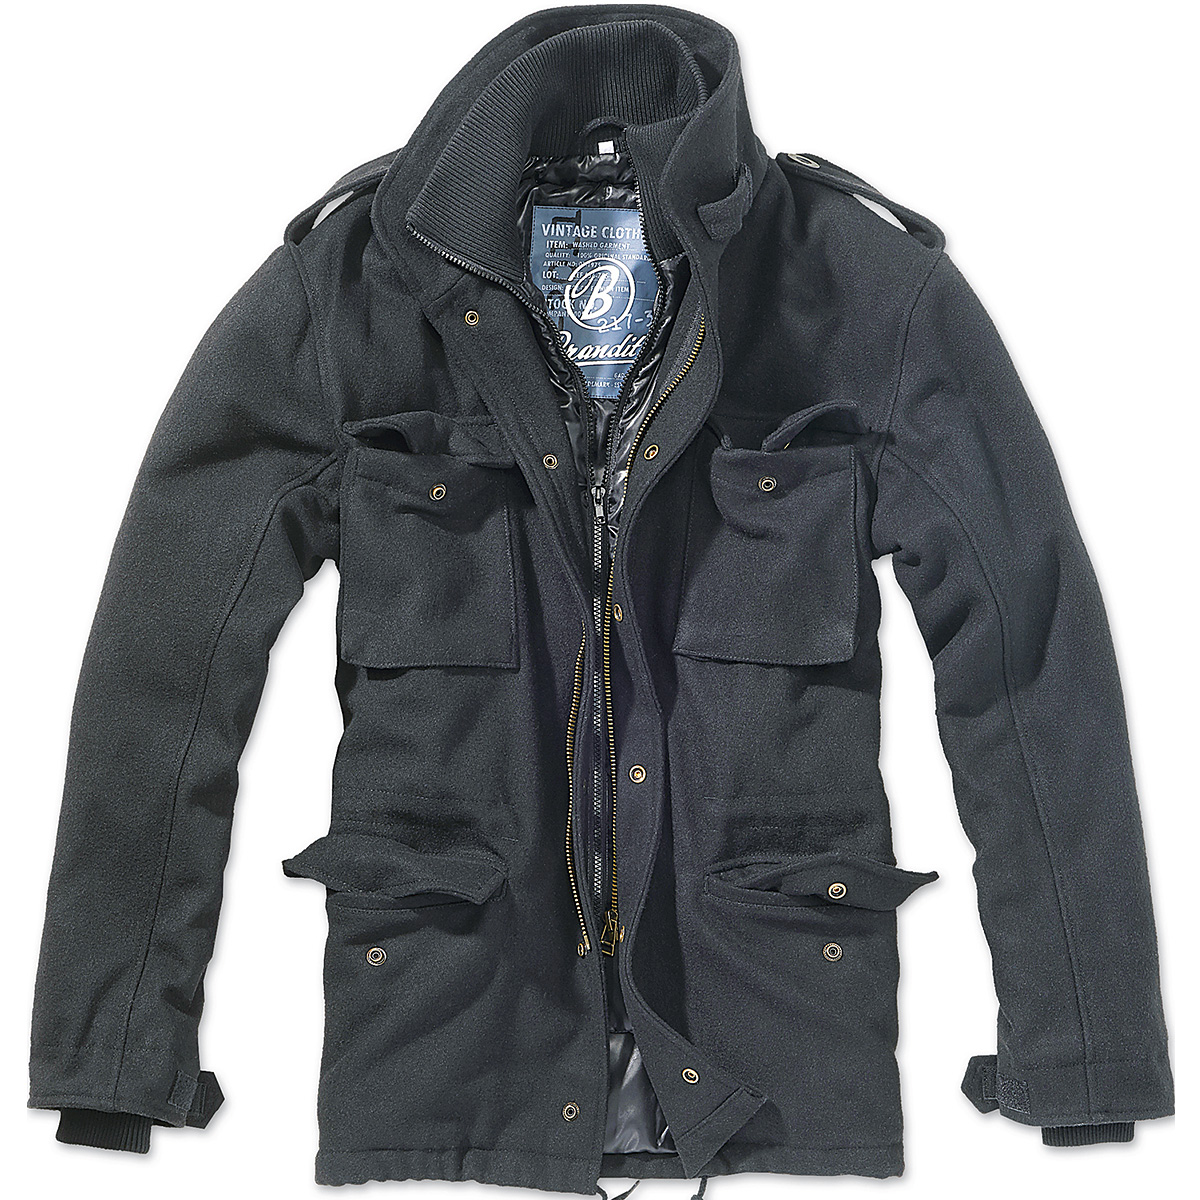 Our mens barn coat is a fleece lined field jacket made of triple brushed cotton that is durable enough for rugged chores but soft enough to drape nicely.5/5(5).